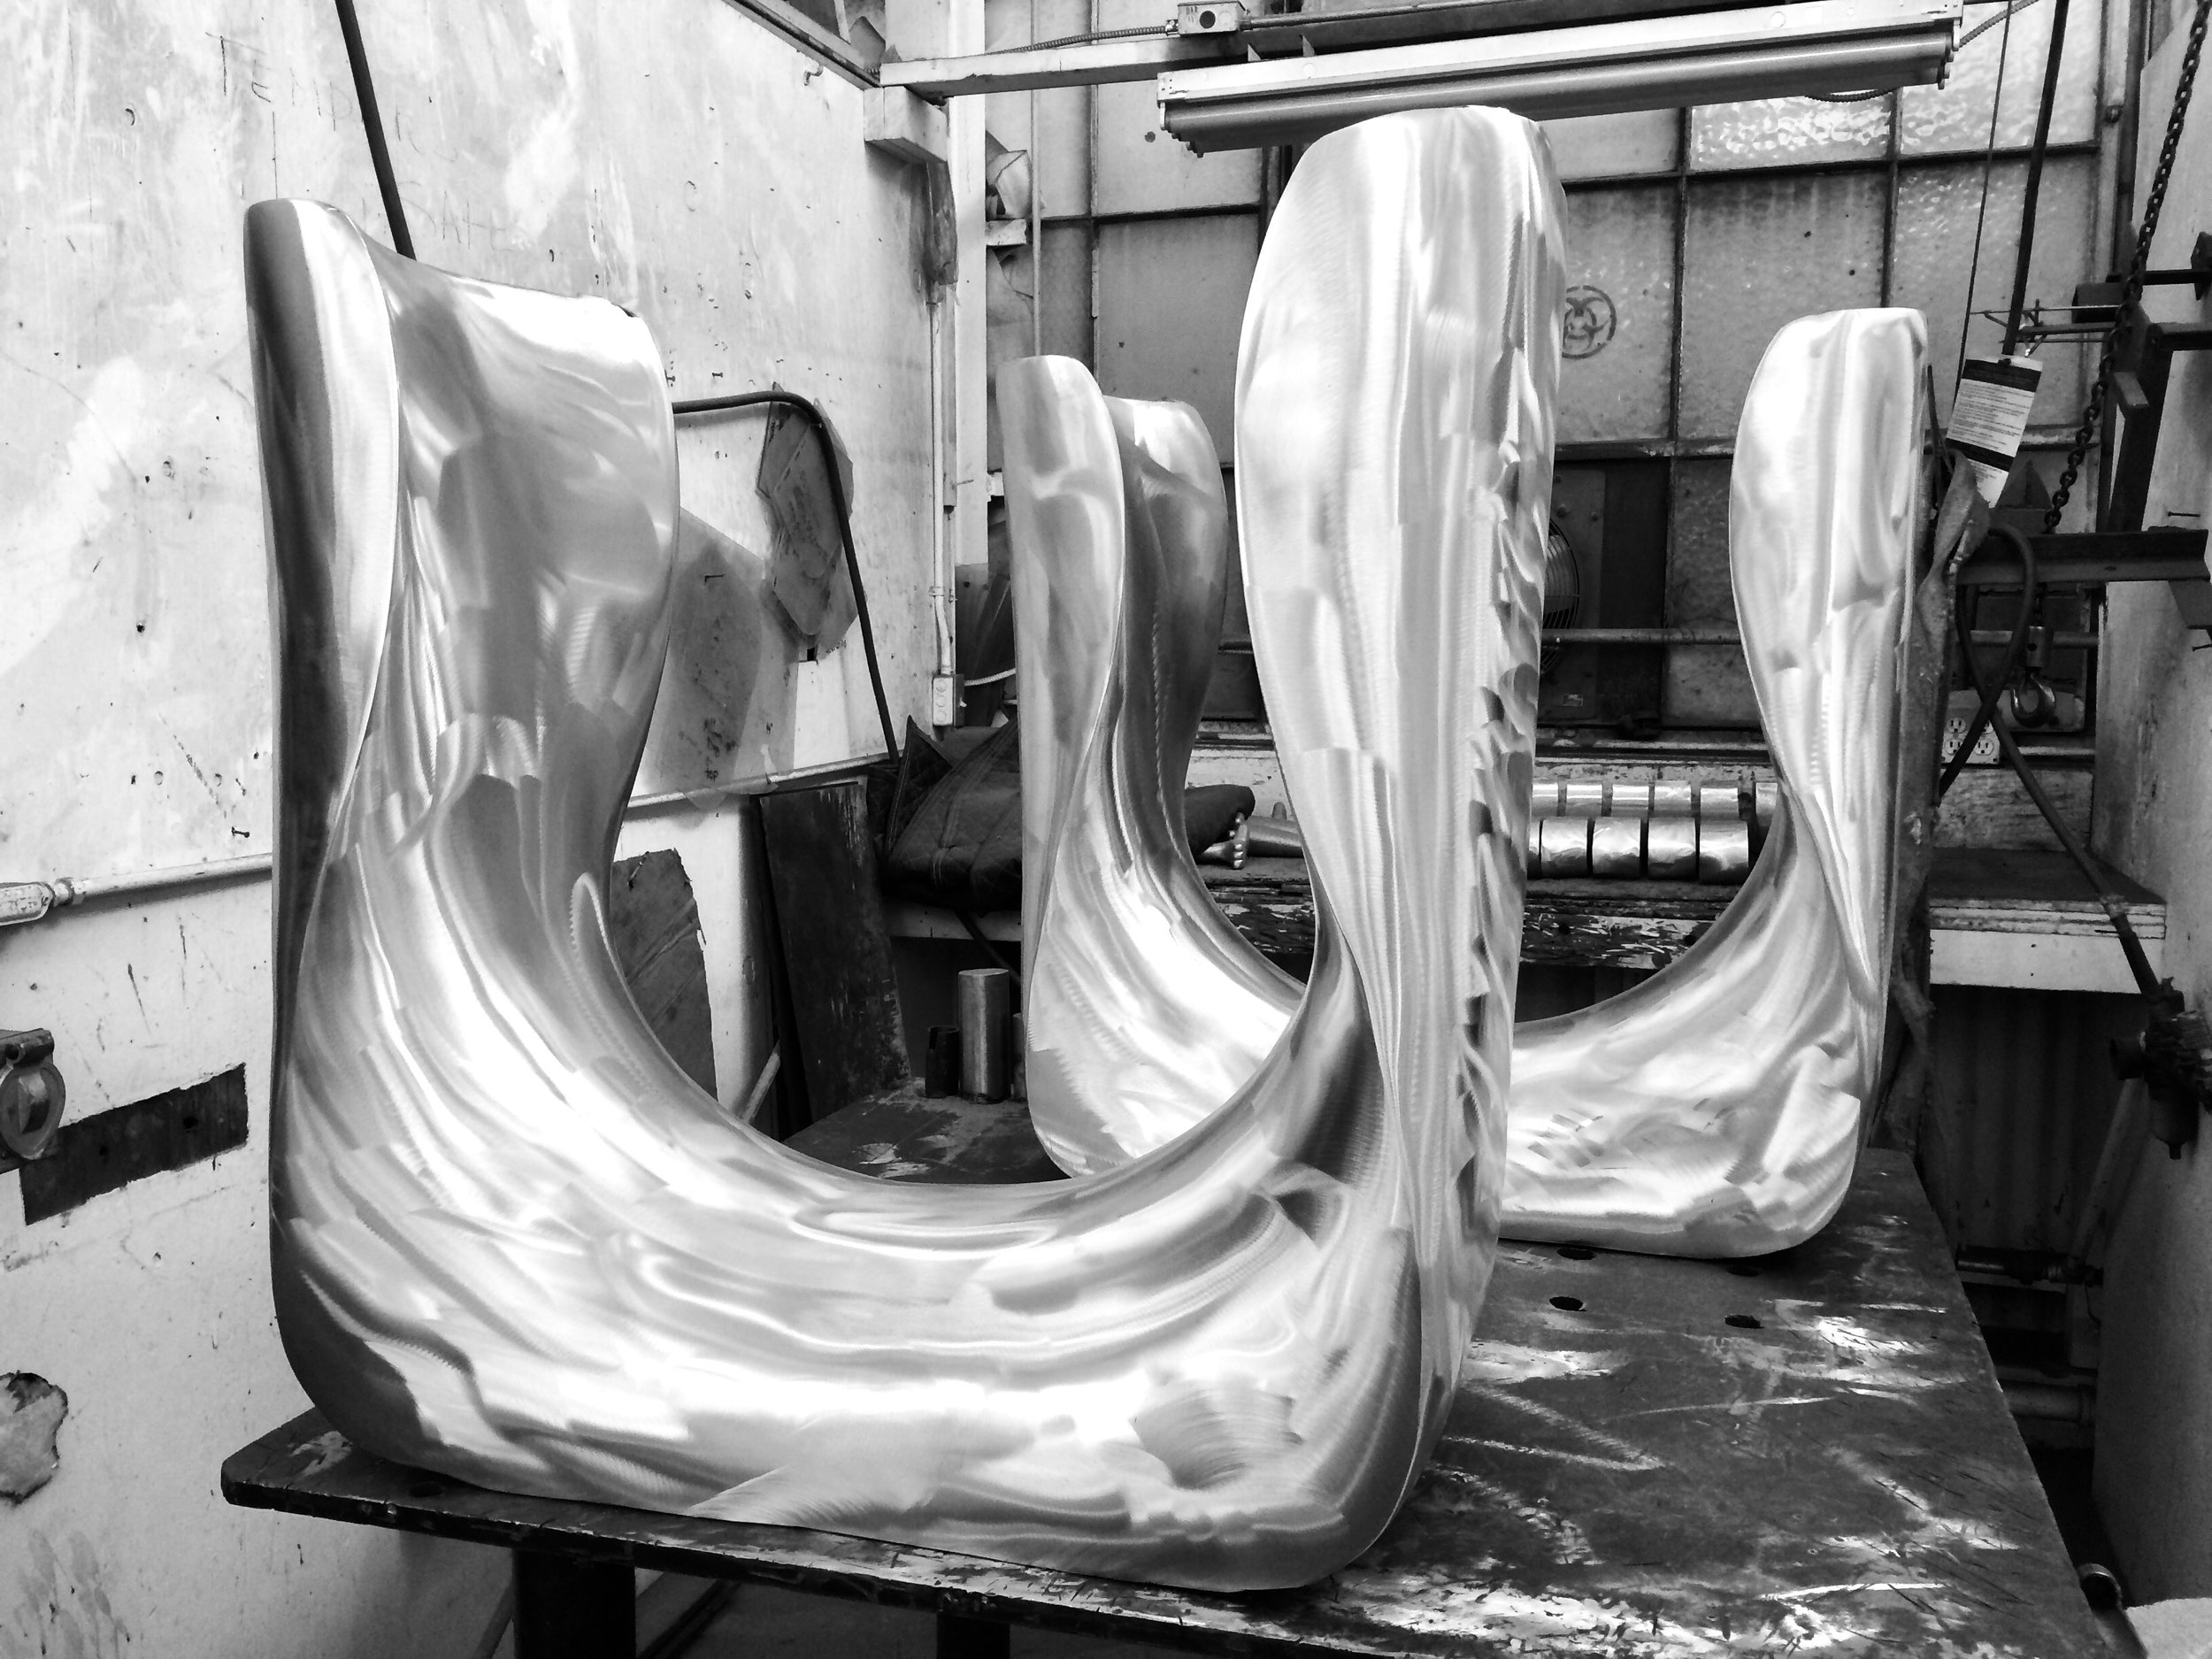 Cast components welded together and ready for polishing.